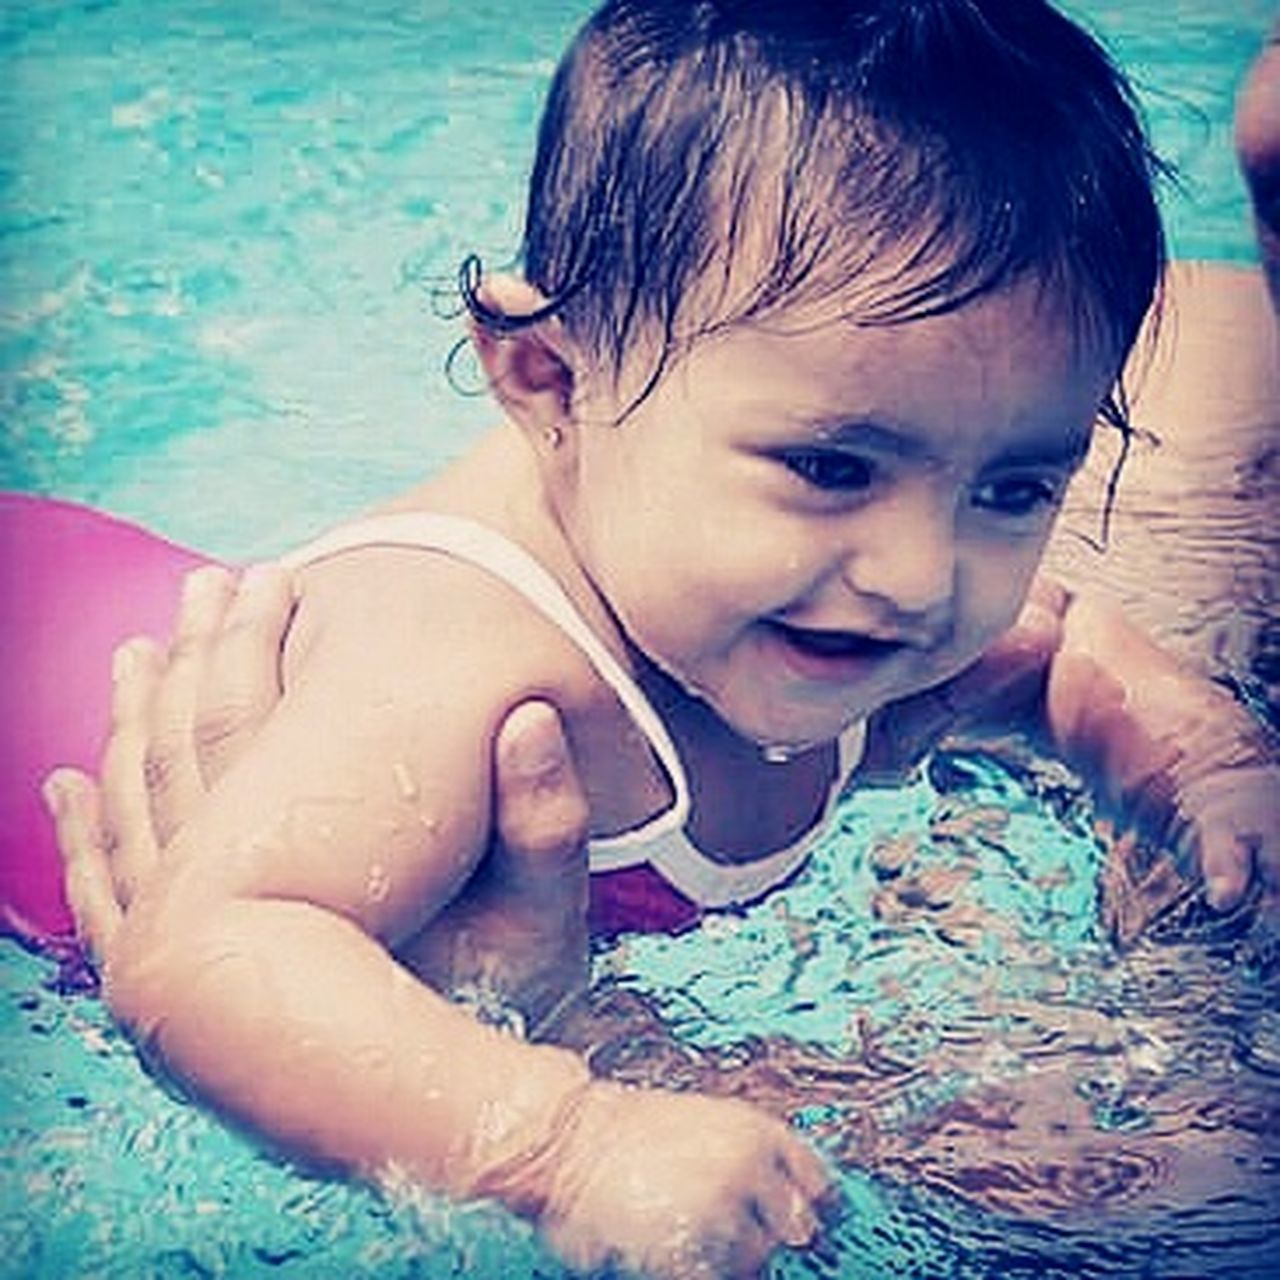 Water Baby! Water Vacations Innocence Outdoors Baby Photography Babygirl Babylove Babymodels Babymodel Swimming Swimming Pool Swimmingtime Babyswimming Swimming :) Summer Relaxation Carefree Innocence